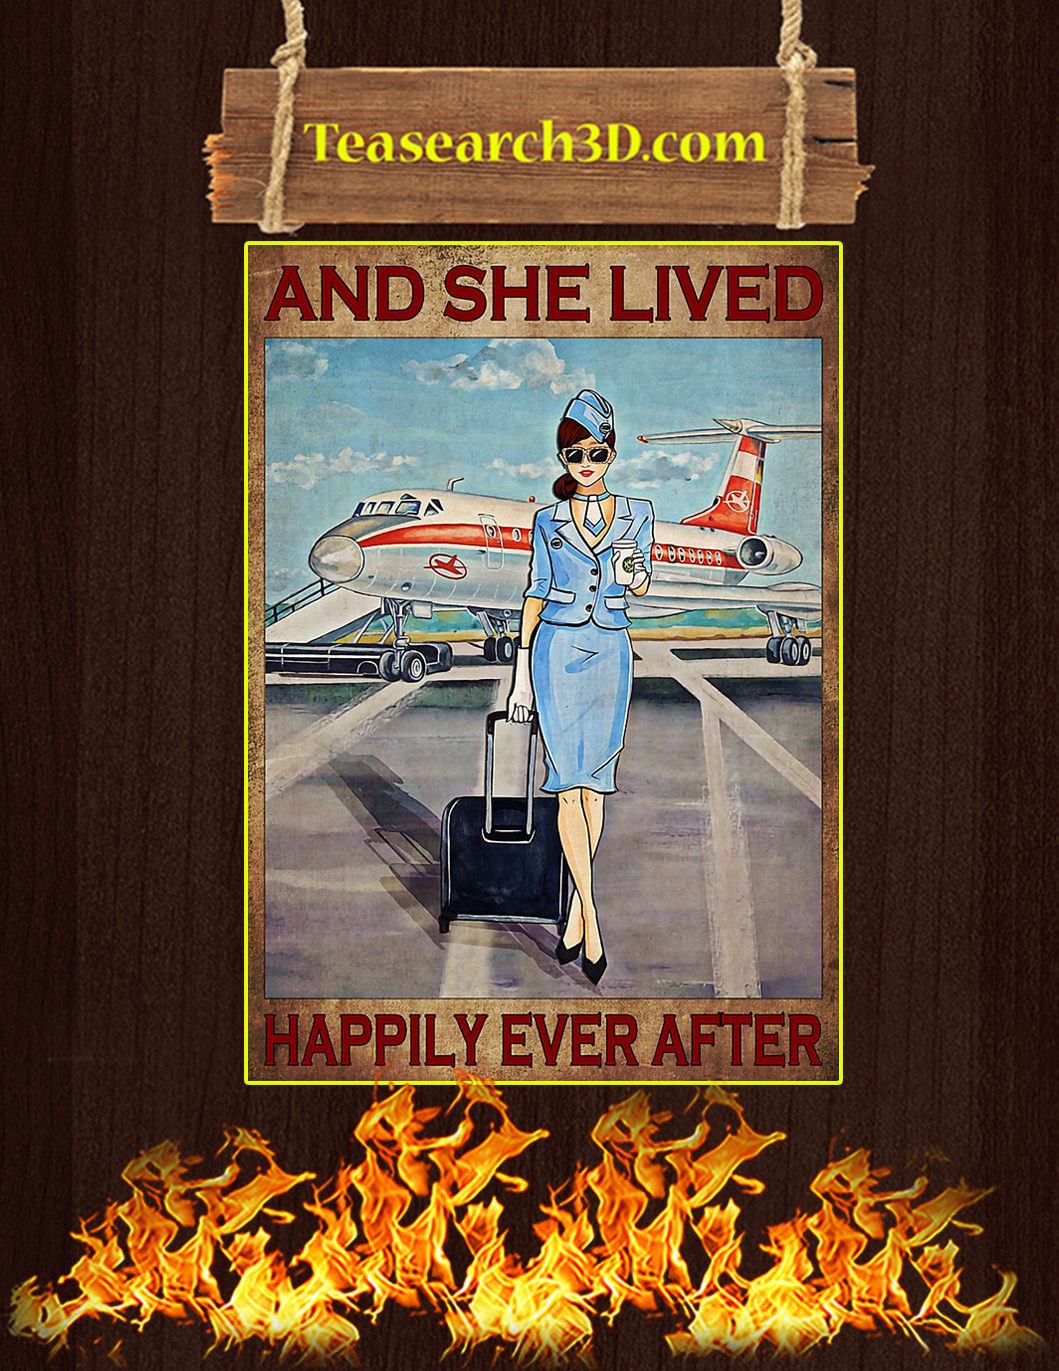 Flight attendant and she lived happily ever after poster 1